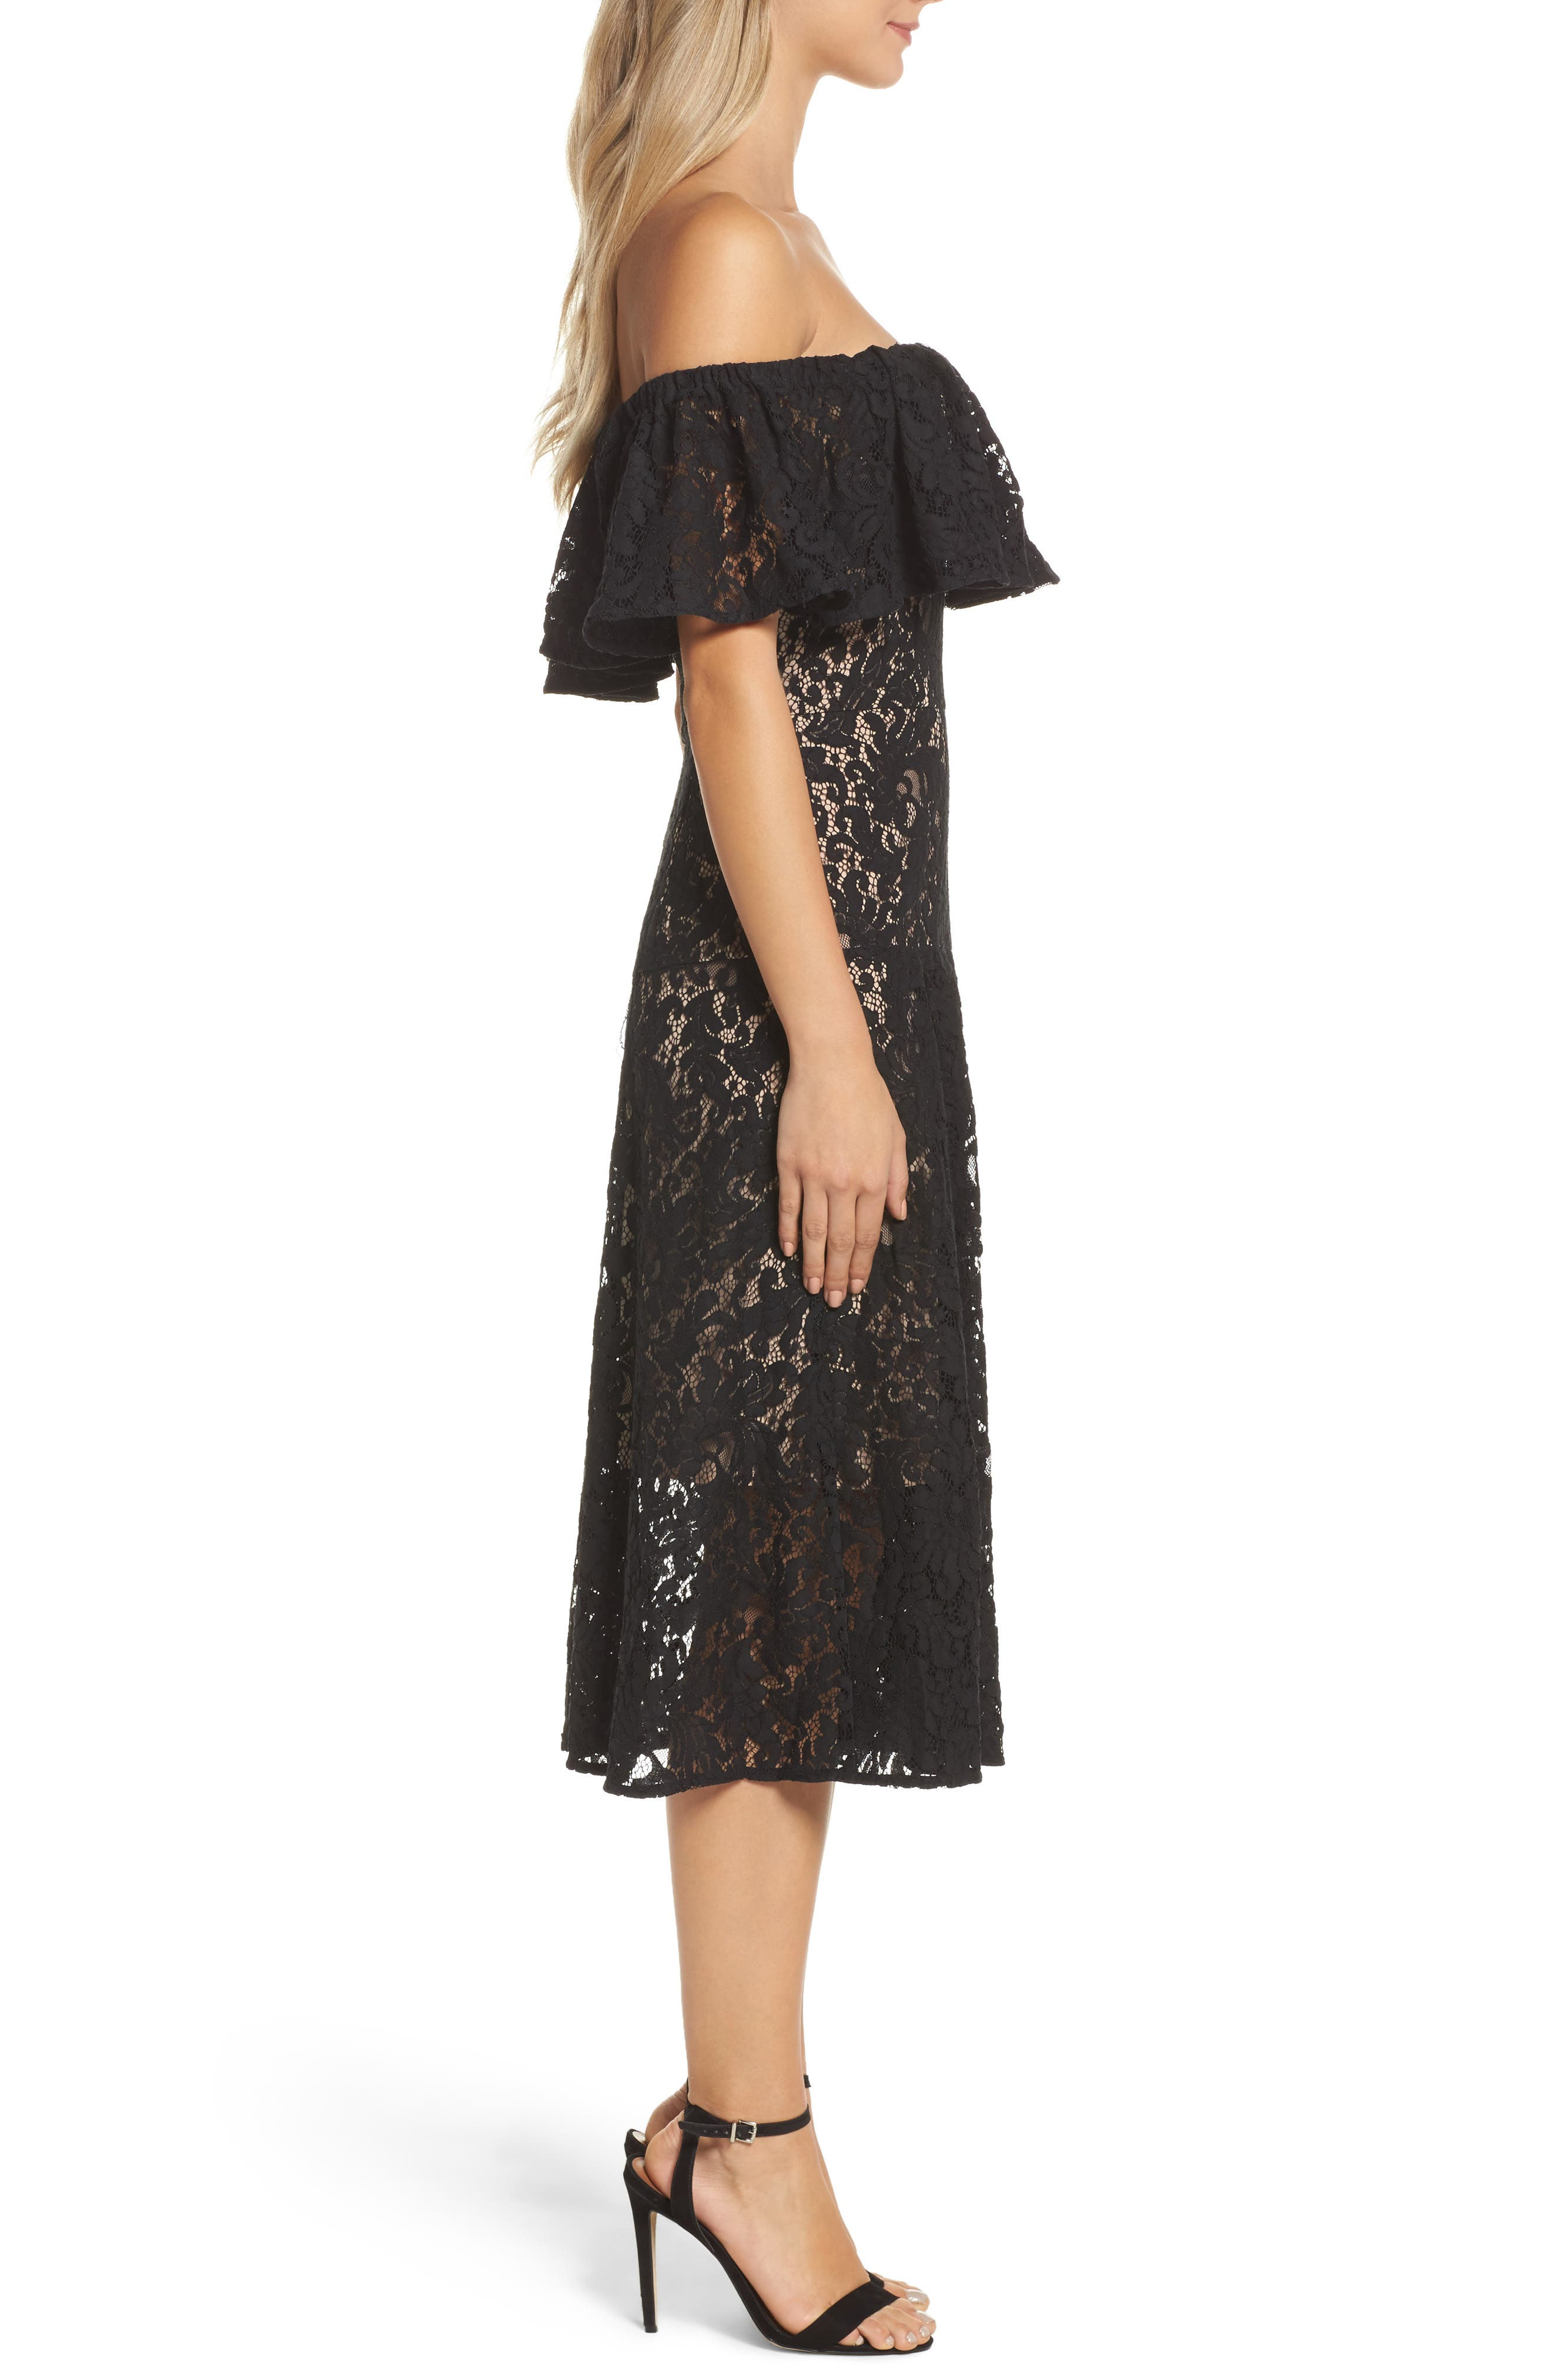 Sunday Silence Lace Off the Shoulder Dress,                             Alternate thumbnail 3, color,                             001